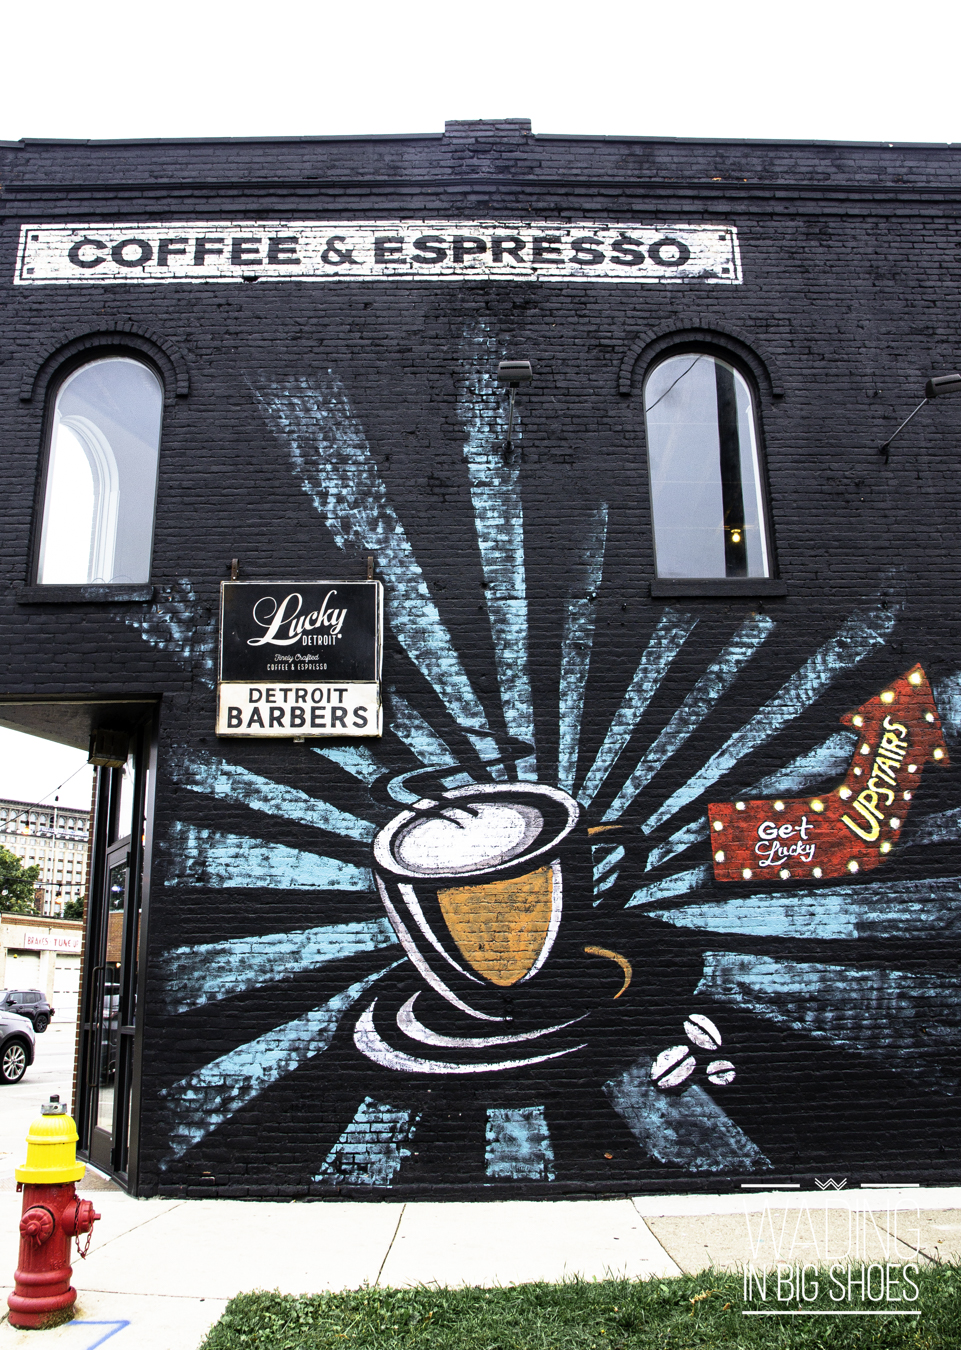 Detroit Coffee Shop Spotlight: Lucky Detroit (Wading in Big Shoes)